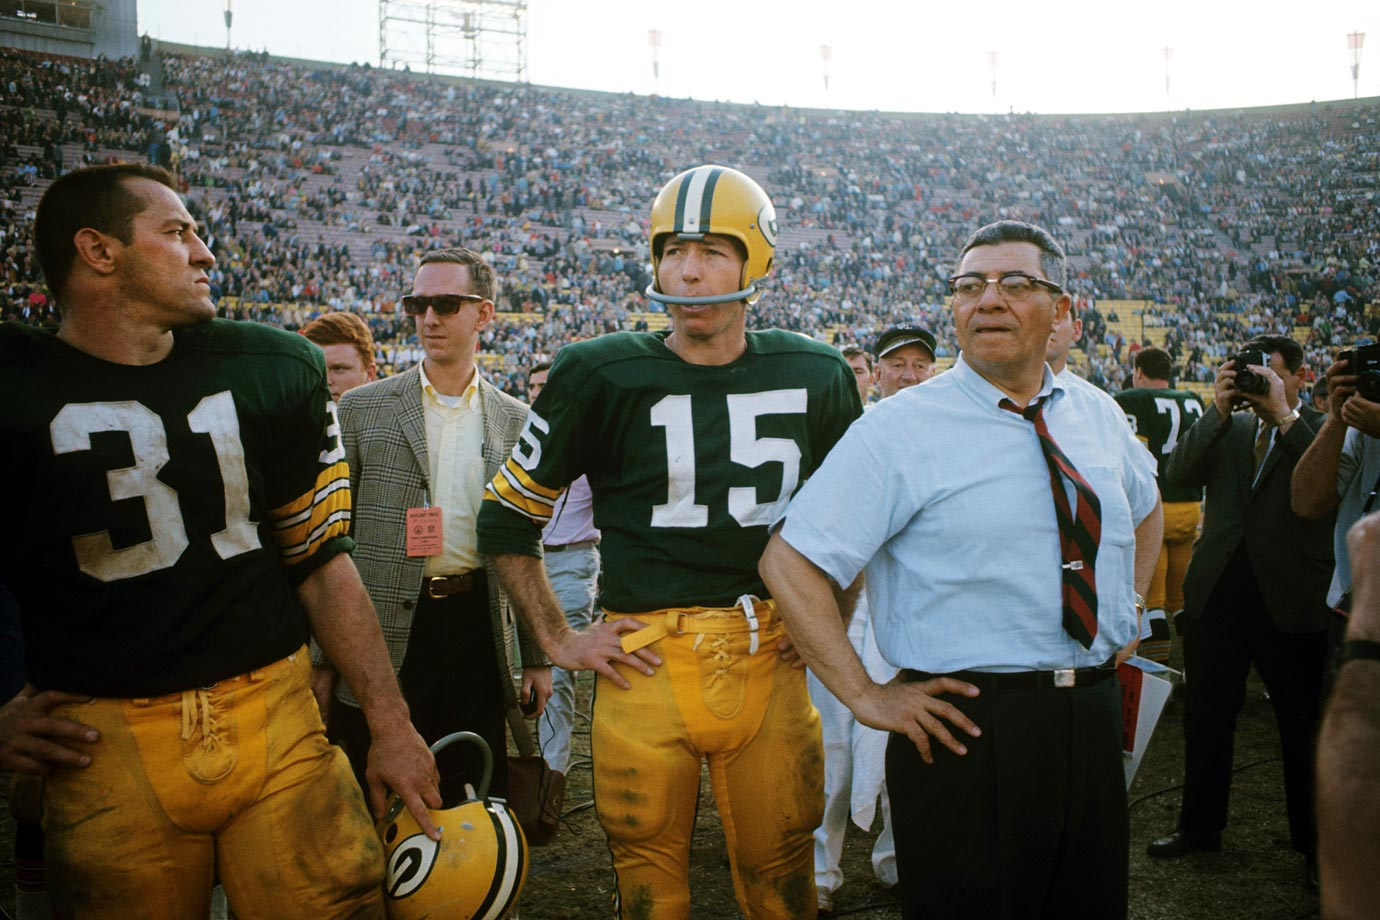 Bart Starr and Vince Lombard look on as the Green Bay Packers defeat the Kansas City Chiefs 35-10. After a close first half, the Packers scored 21 consecutive points to run away with the game.